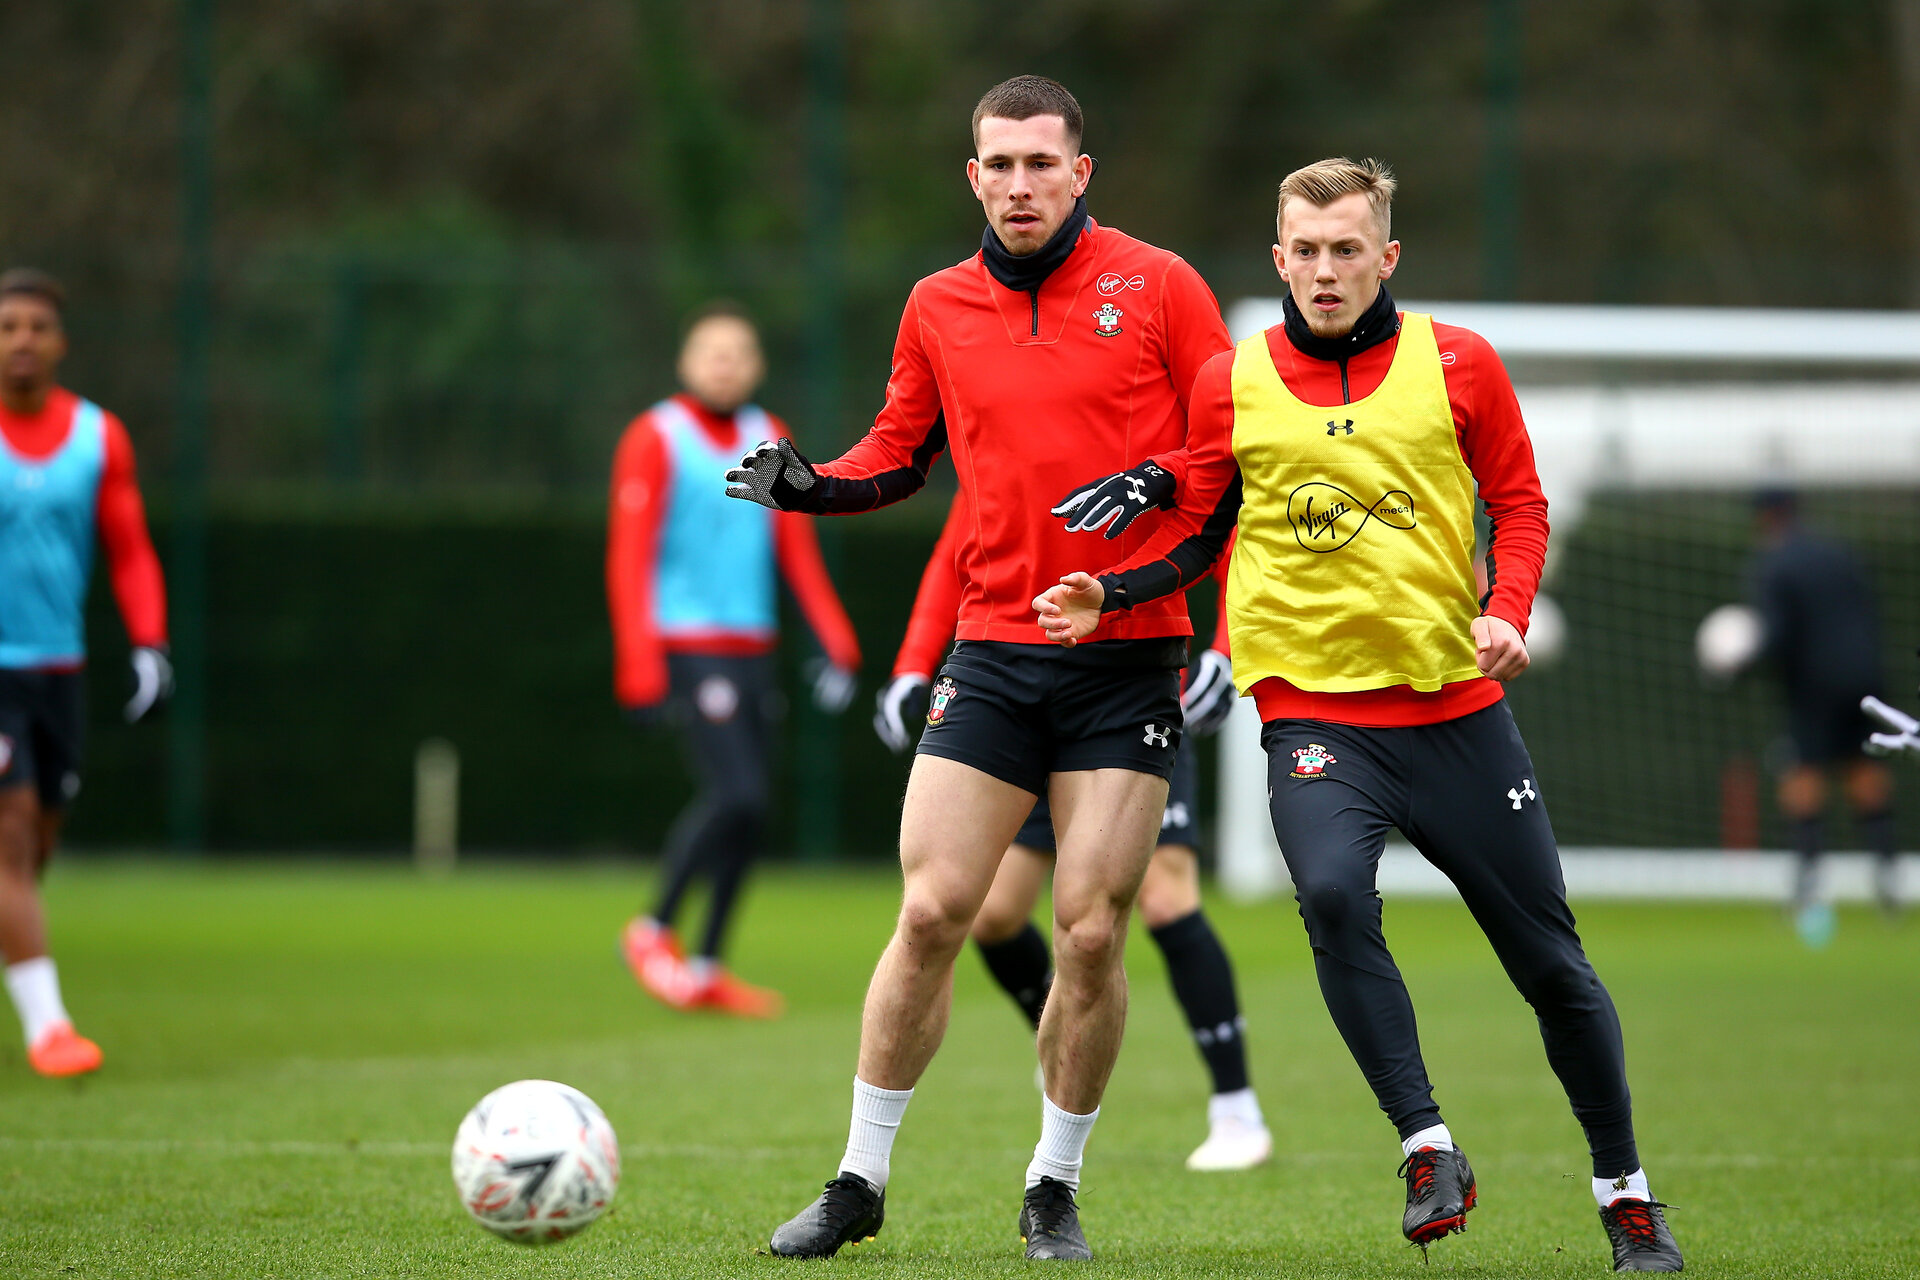 SOUTHAMPTON, ENGLAND - JANUARY 15: LtoR Pierre-Emile Højbjerg, James Ward-Prowse during a Southampton FC  training session at Staplewood Complex on January 15, 2019 in Southampton, England. (Photo by James Bridle - Southampton FC/Southampton FC via Getty Images)